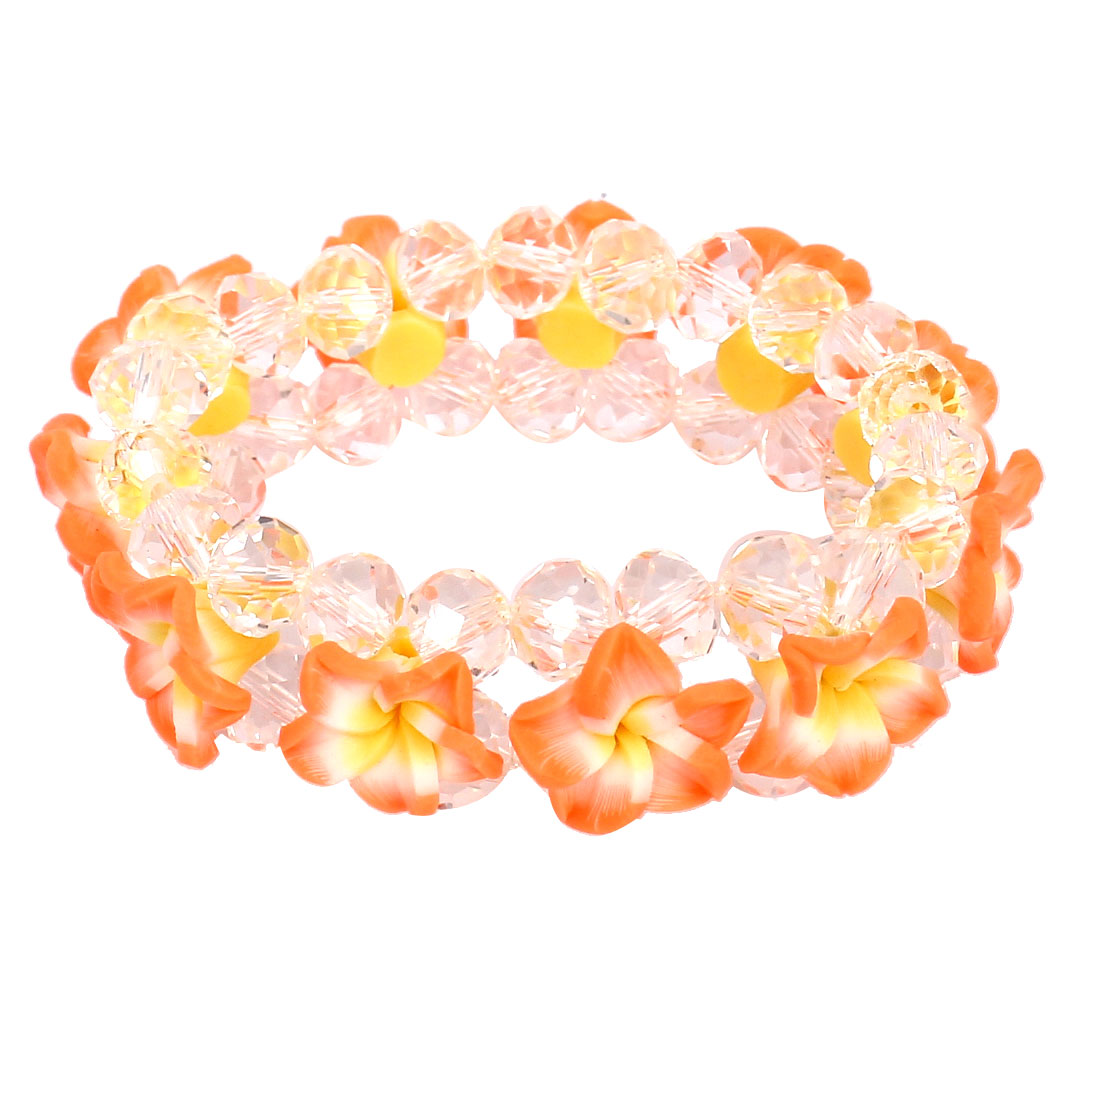 Lady Peony Flower Faux Crystal Inlaid Wrist Chain Bracelet Ornament Orange